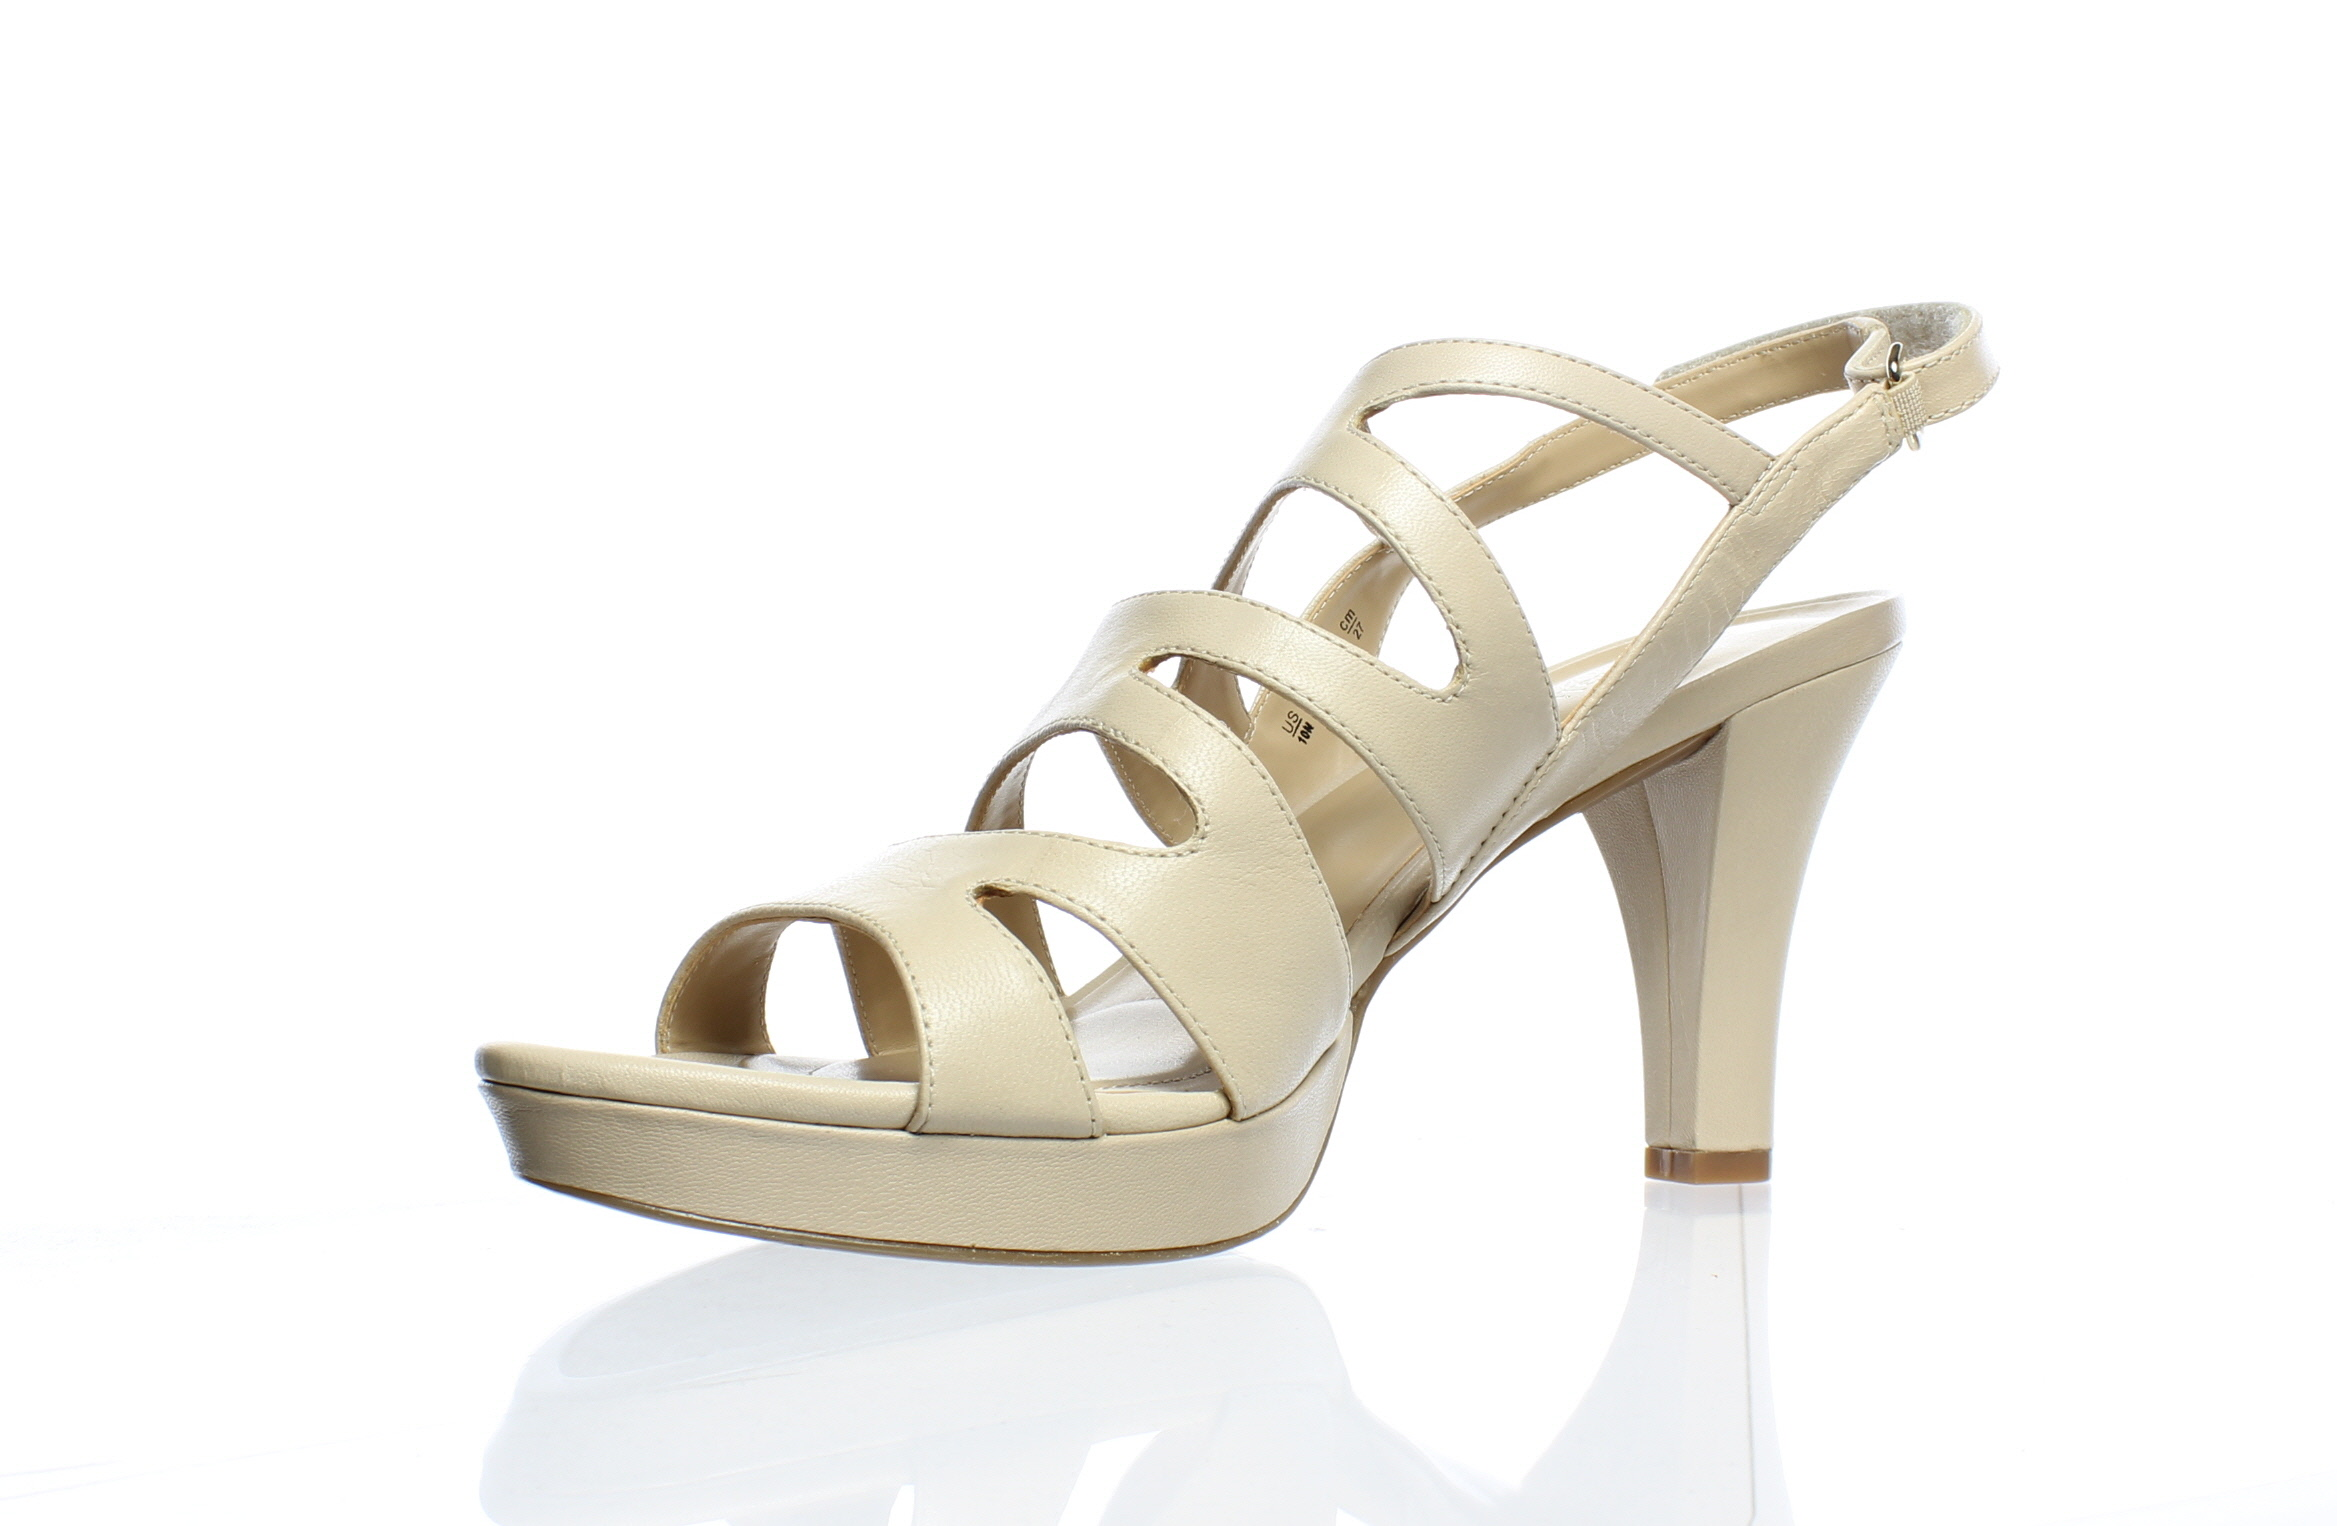 71c3ecd6724c Naturalizer Womens Pressley Taupe Sandals Size 10 (AA